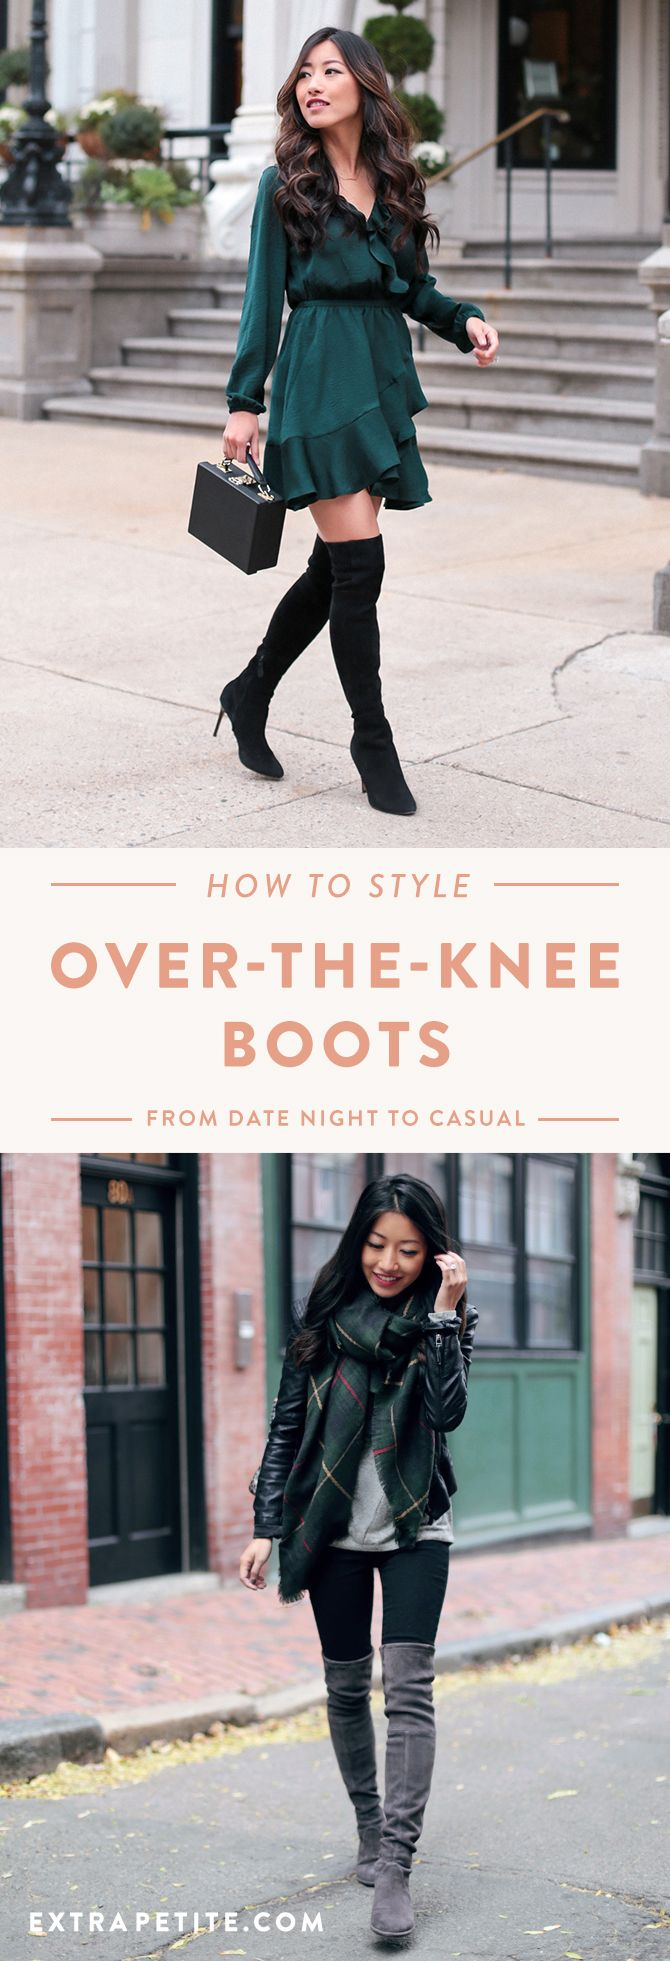 over the knee boots outfit ideas by extra petite fashion blog